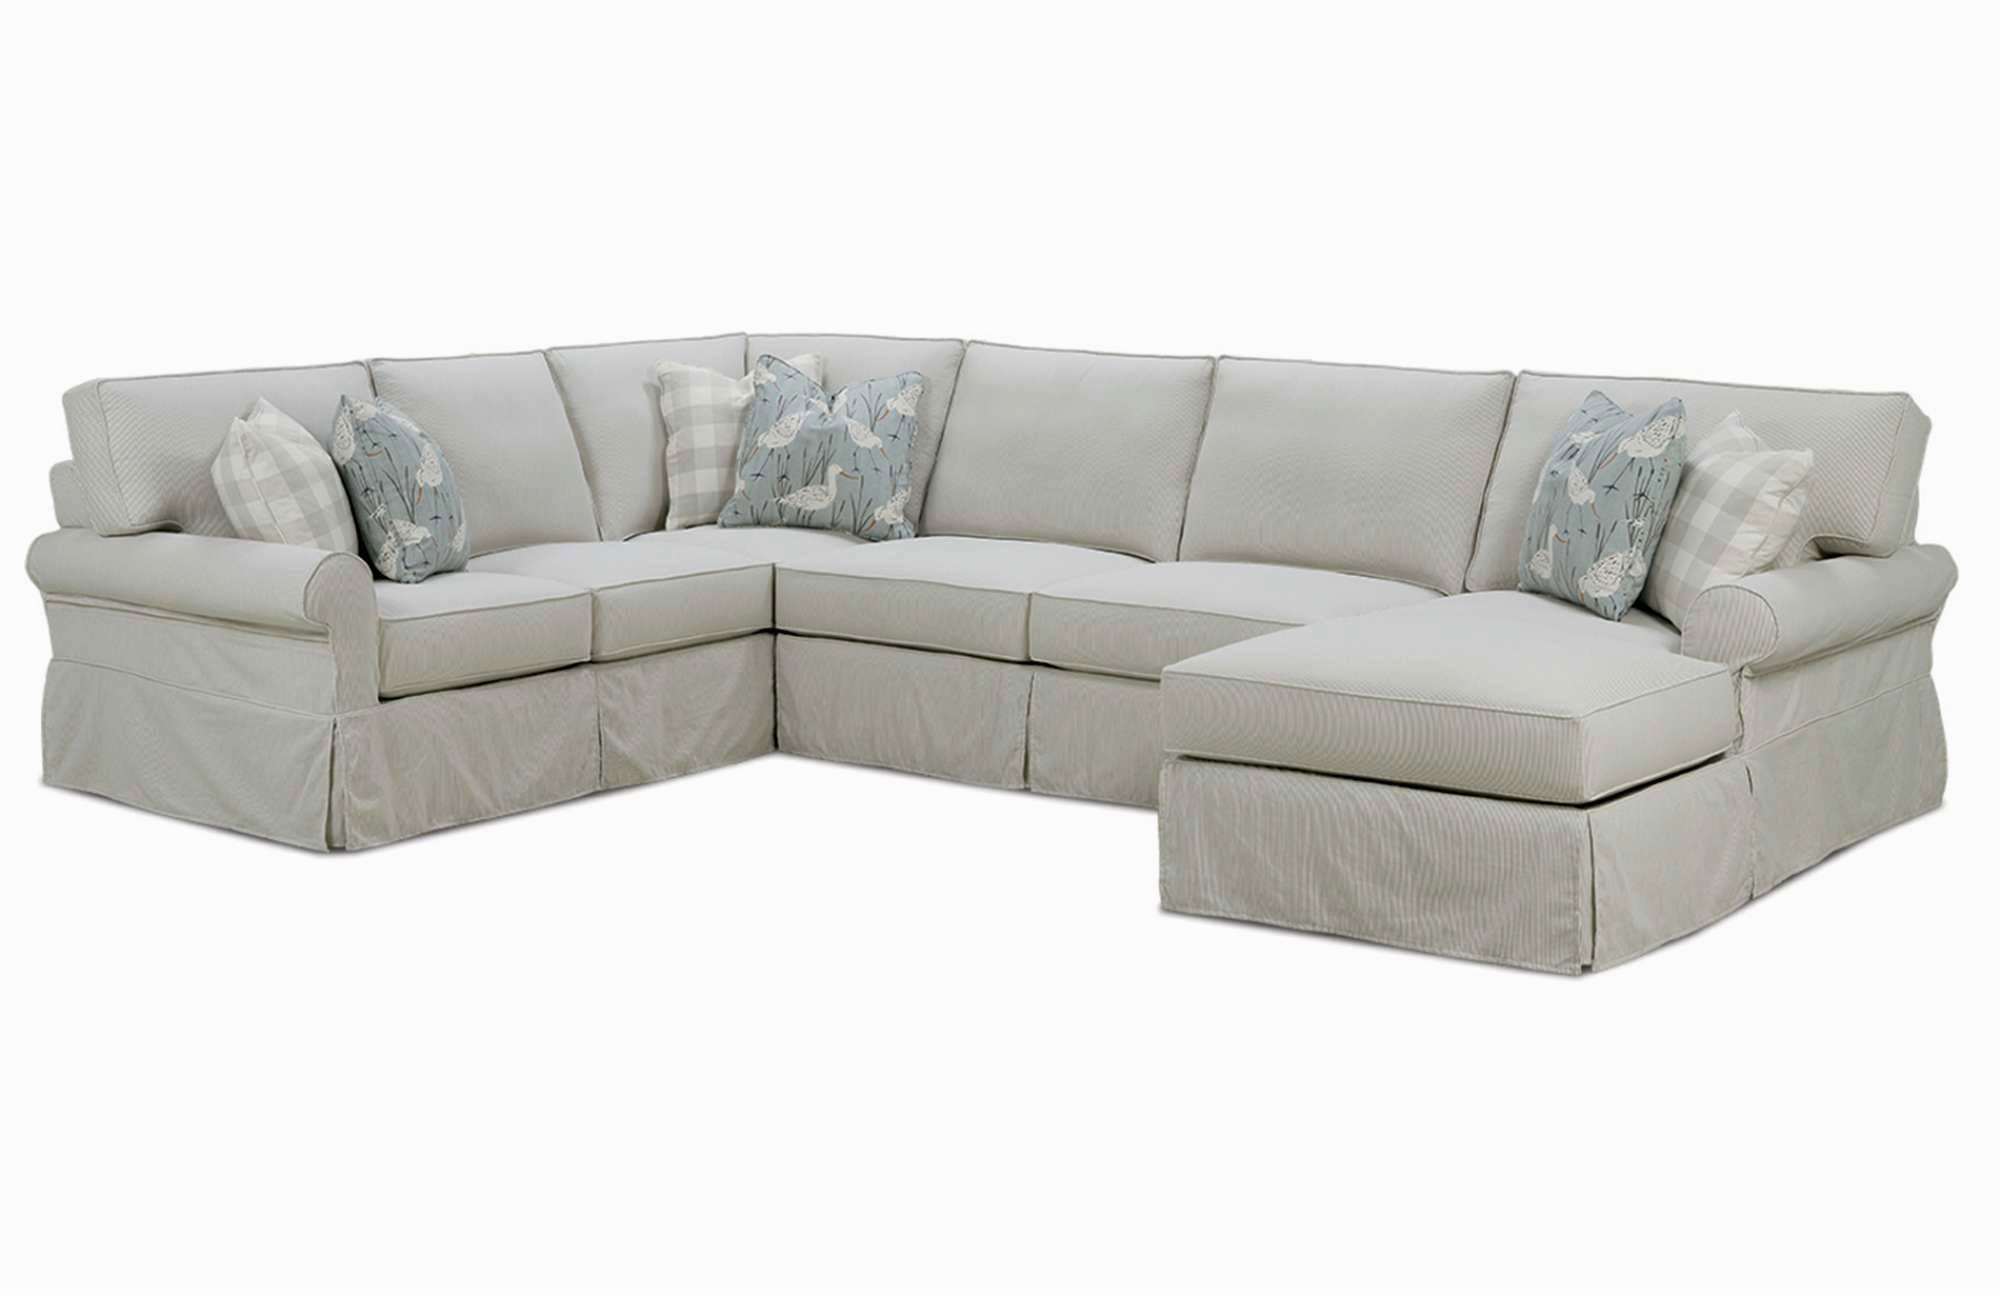 inspirational sectional sofa with sleeper decoration-Modern Sectional sofa with Sleeper Concept